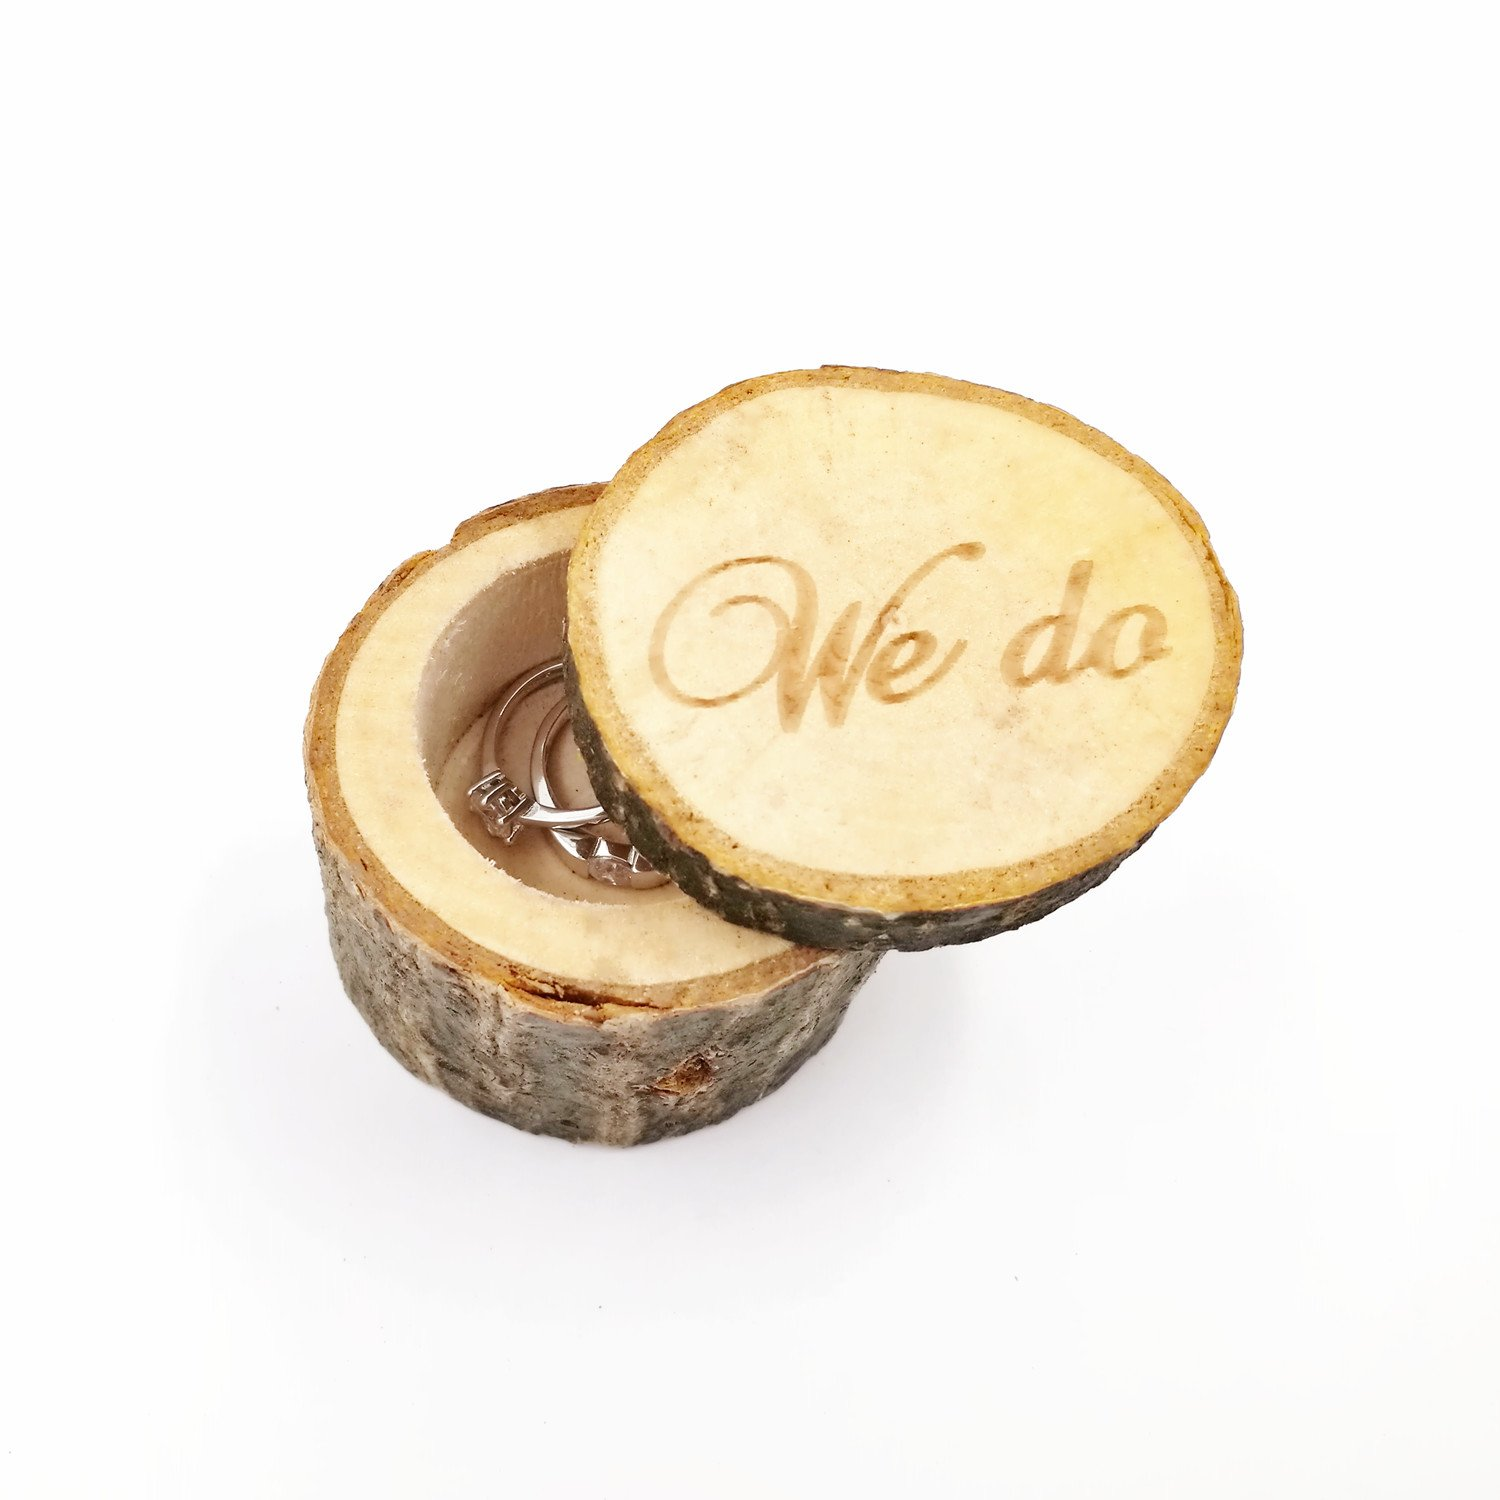 Kalevel 2pcs We Do Wedding Ring Box Cake Cupcake Toppers Rustic Wooden Ring Bearer Box Vintage Personalized Funny Wedding Cake Toppers Decorations Cake Insert Card Ring Holder for Wedding Ceremony by Kalevel (Image #3)